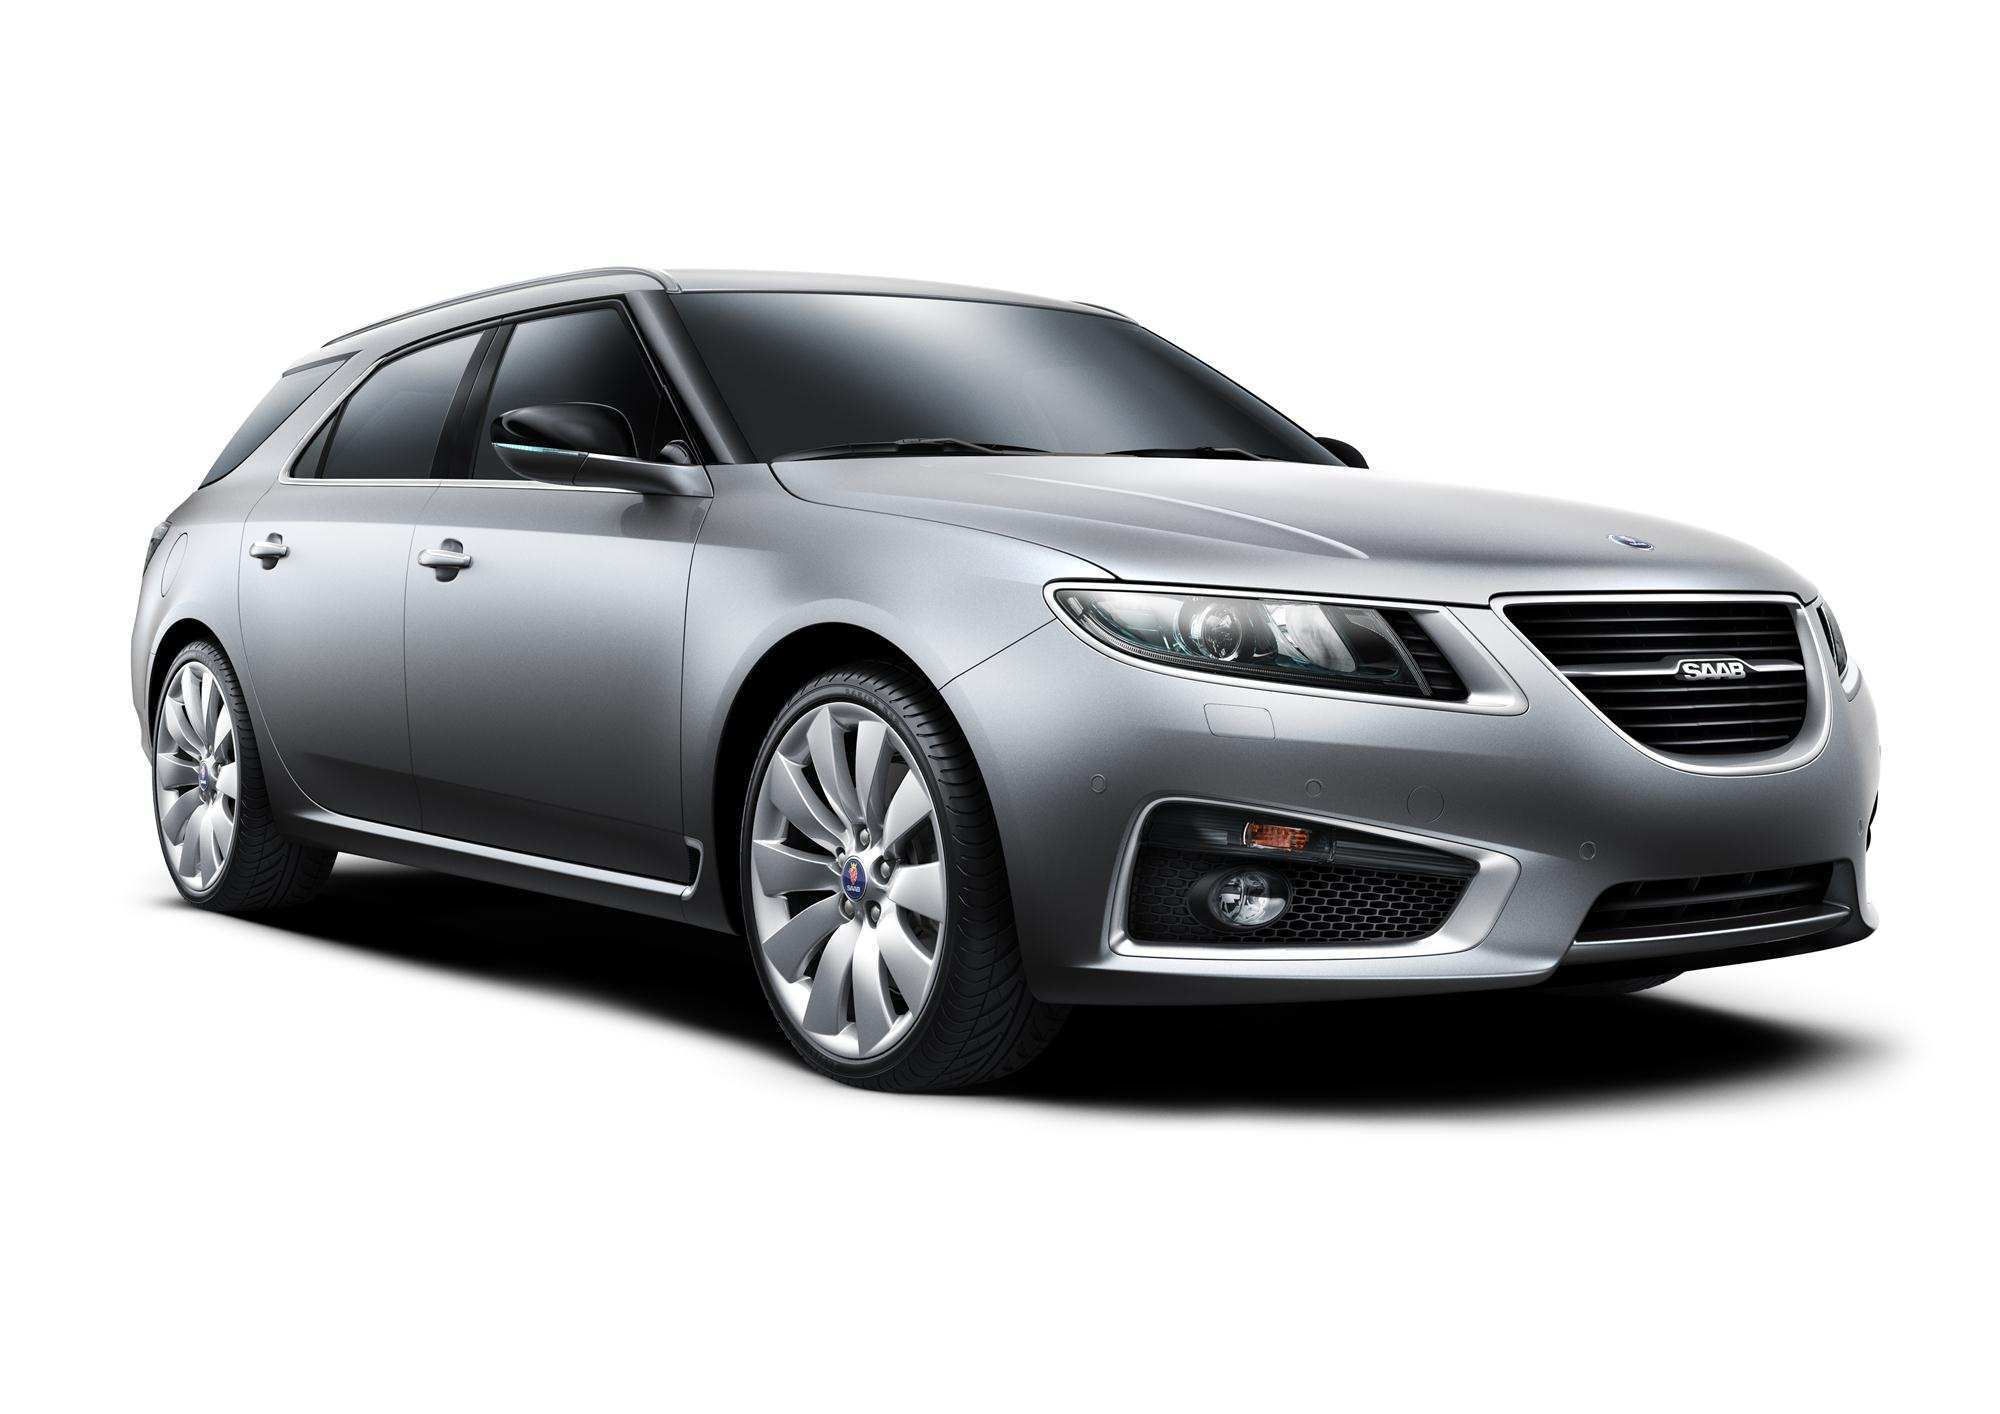 89 The Best 2020 Saab 9 5 Redesign And Concept